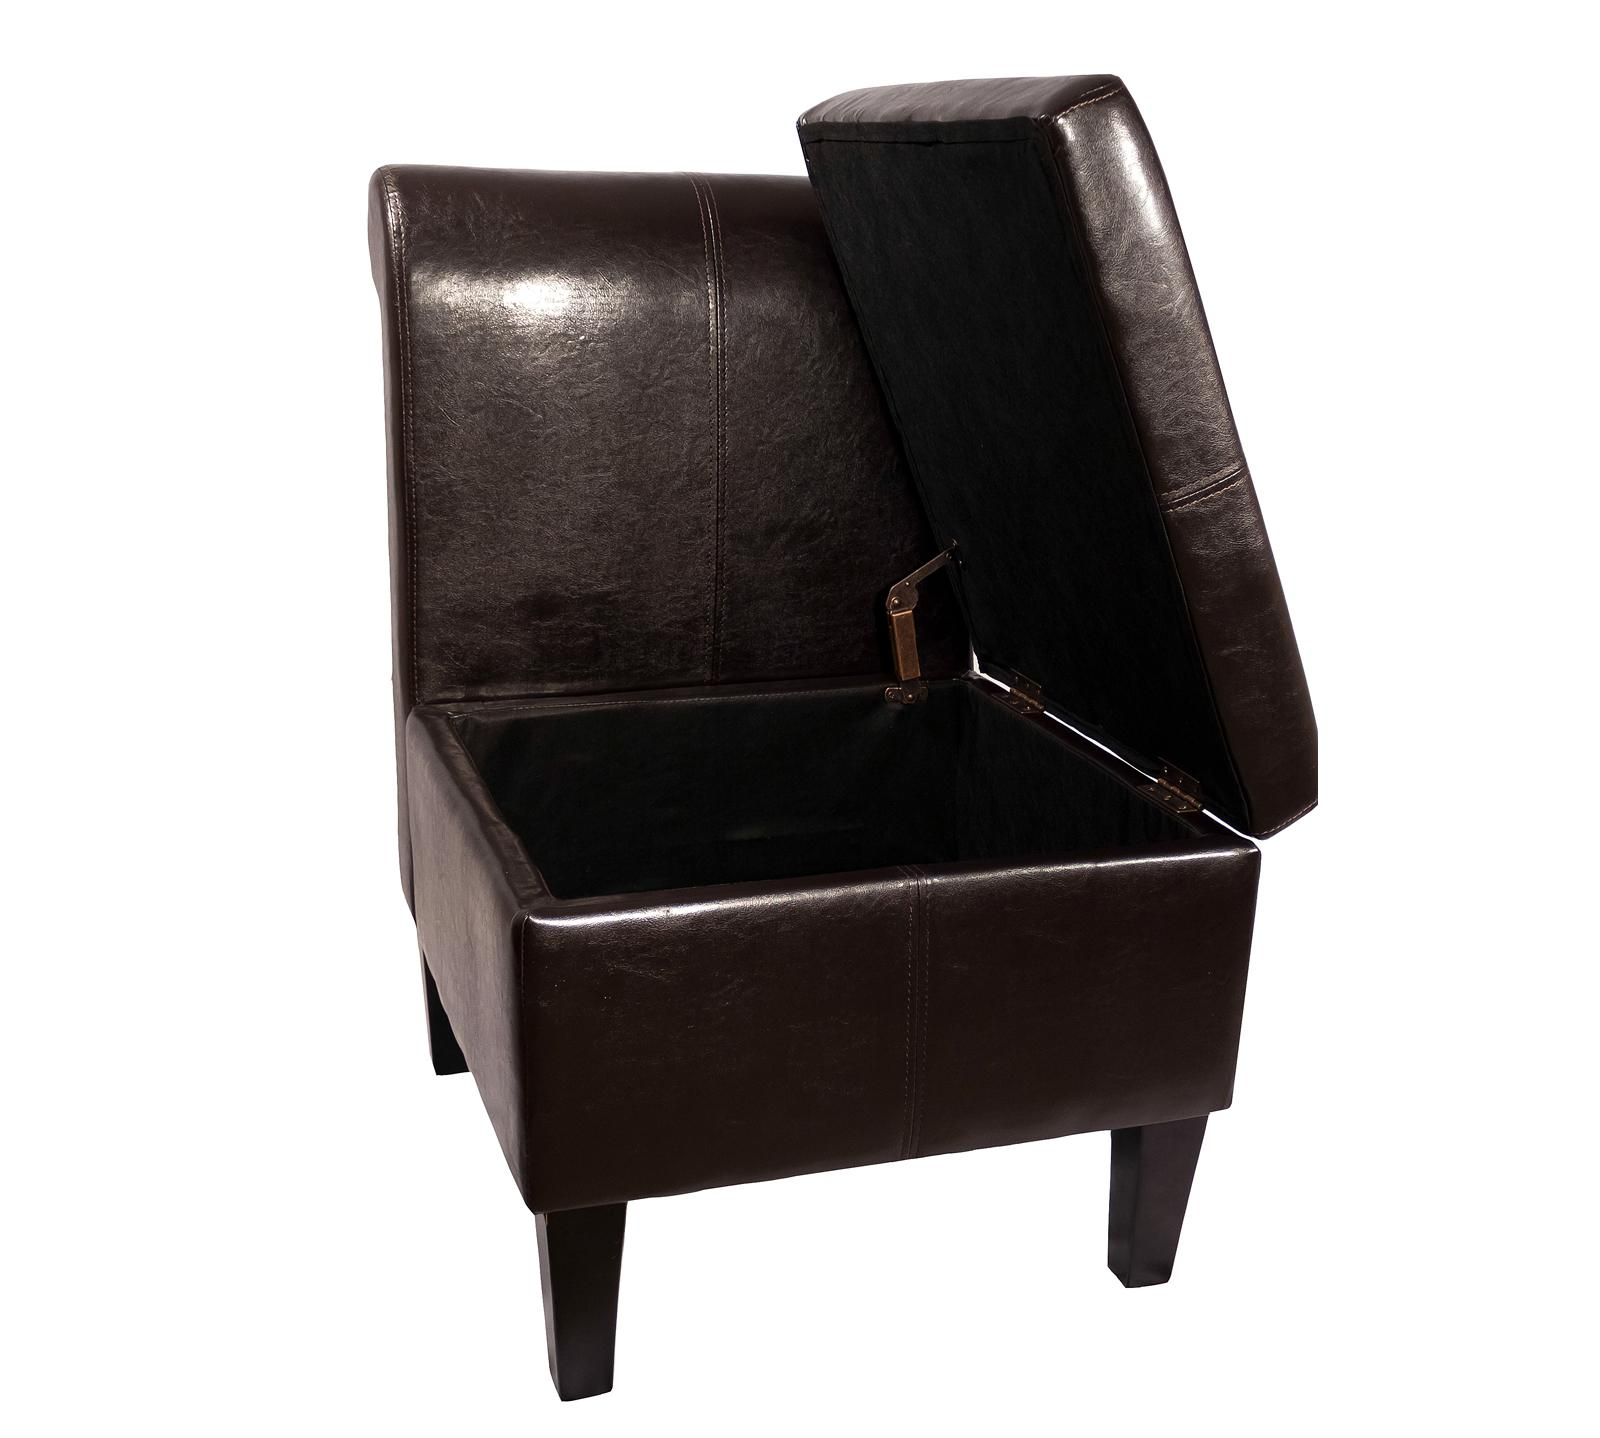 Admirable Tempurpedic Executive Chair Designs | Cute Tempur Pedic Tp9000